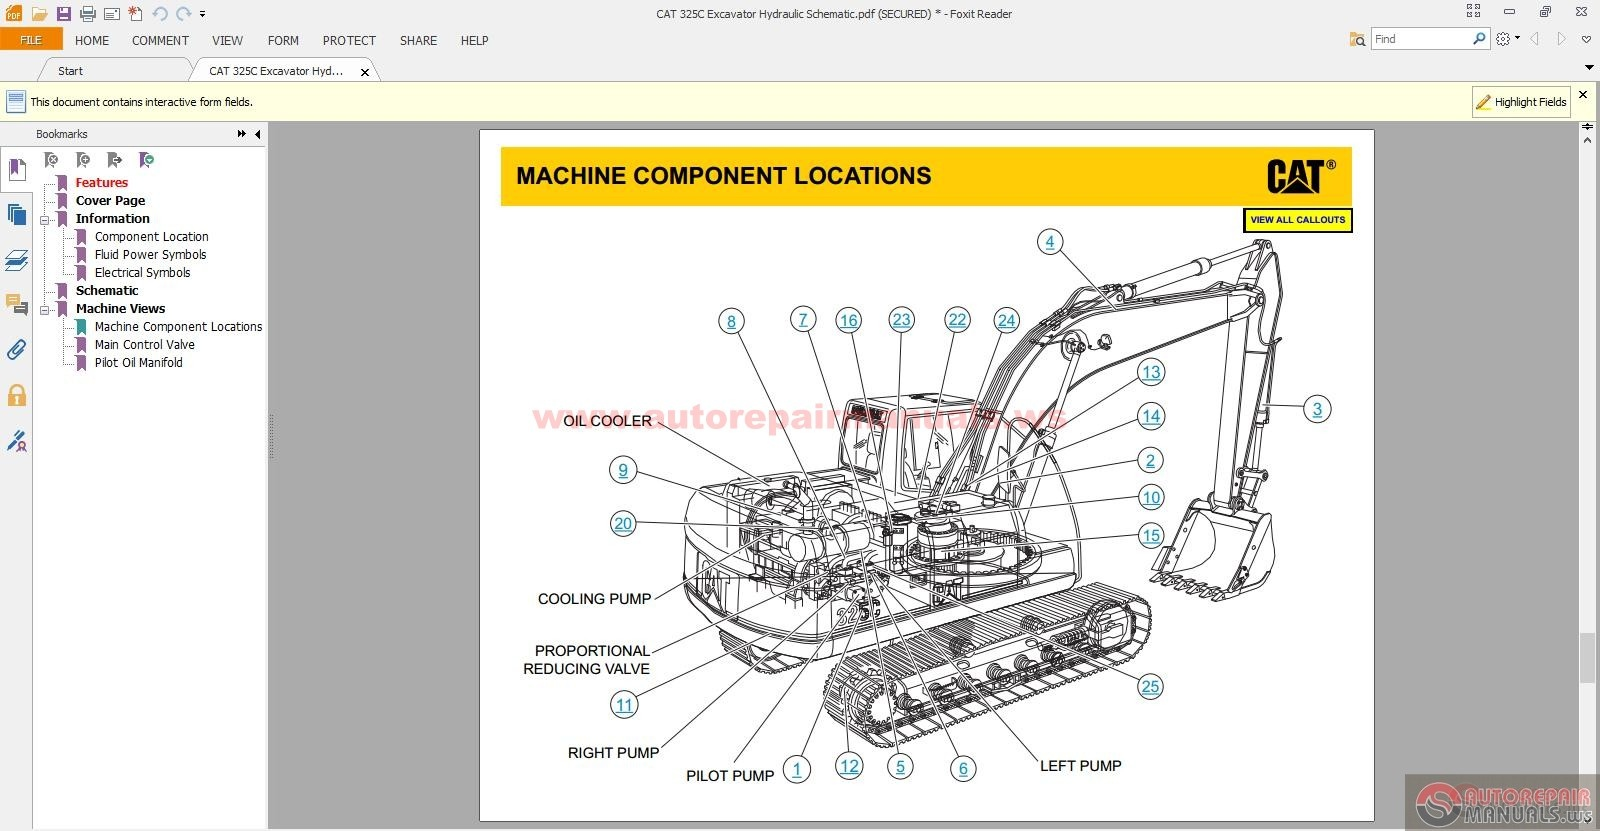 Komatsu Forklift Engine Diagram Schematics Wiring Diagrams Terex Excavator Free Image Rebuild Kits Check Light